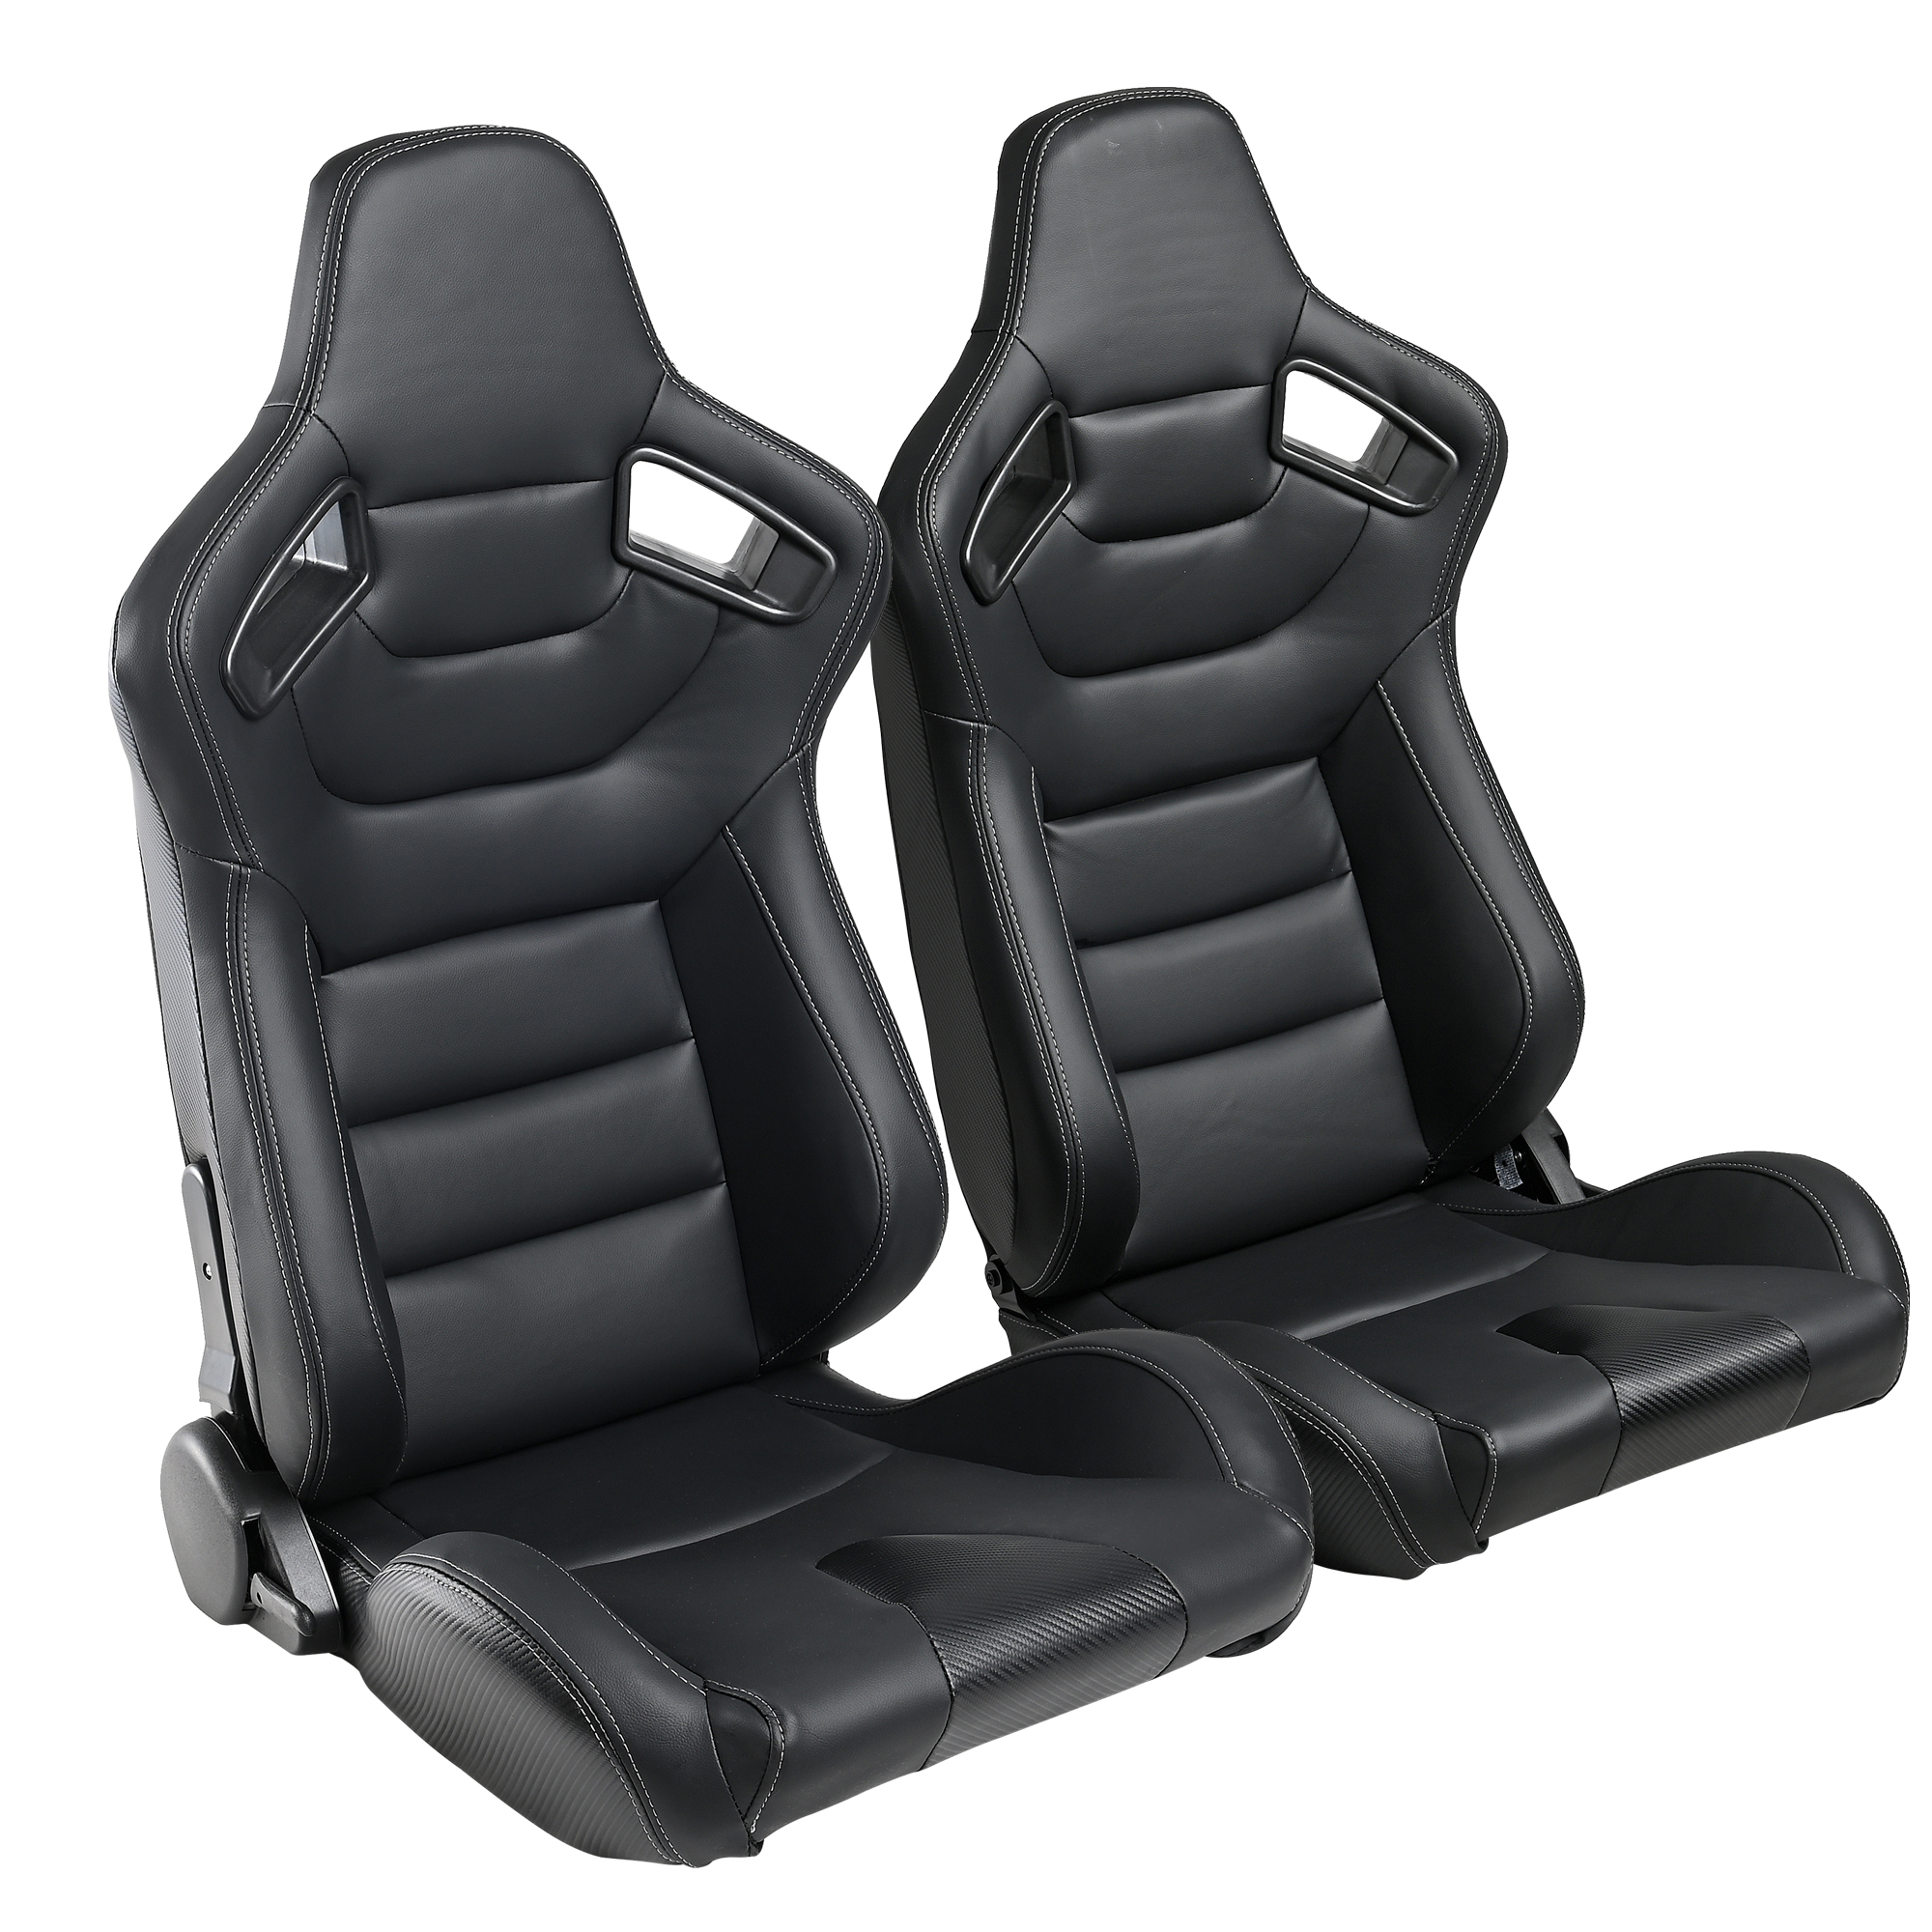 Picture of: Jbr1041 Hot Sale New Pvc Leather Single Slider Racing Universal Bucket Seats For Sale Buy Bucket Seats Bucket Seats For Sale Universal Leather Car Seats Product On Alibaba Com